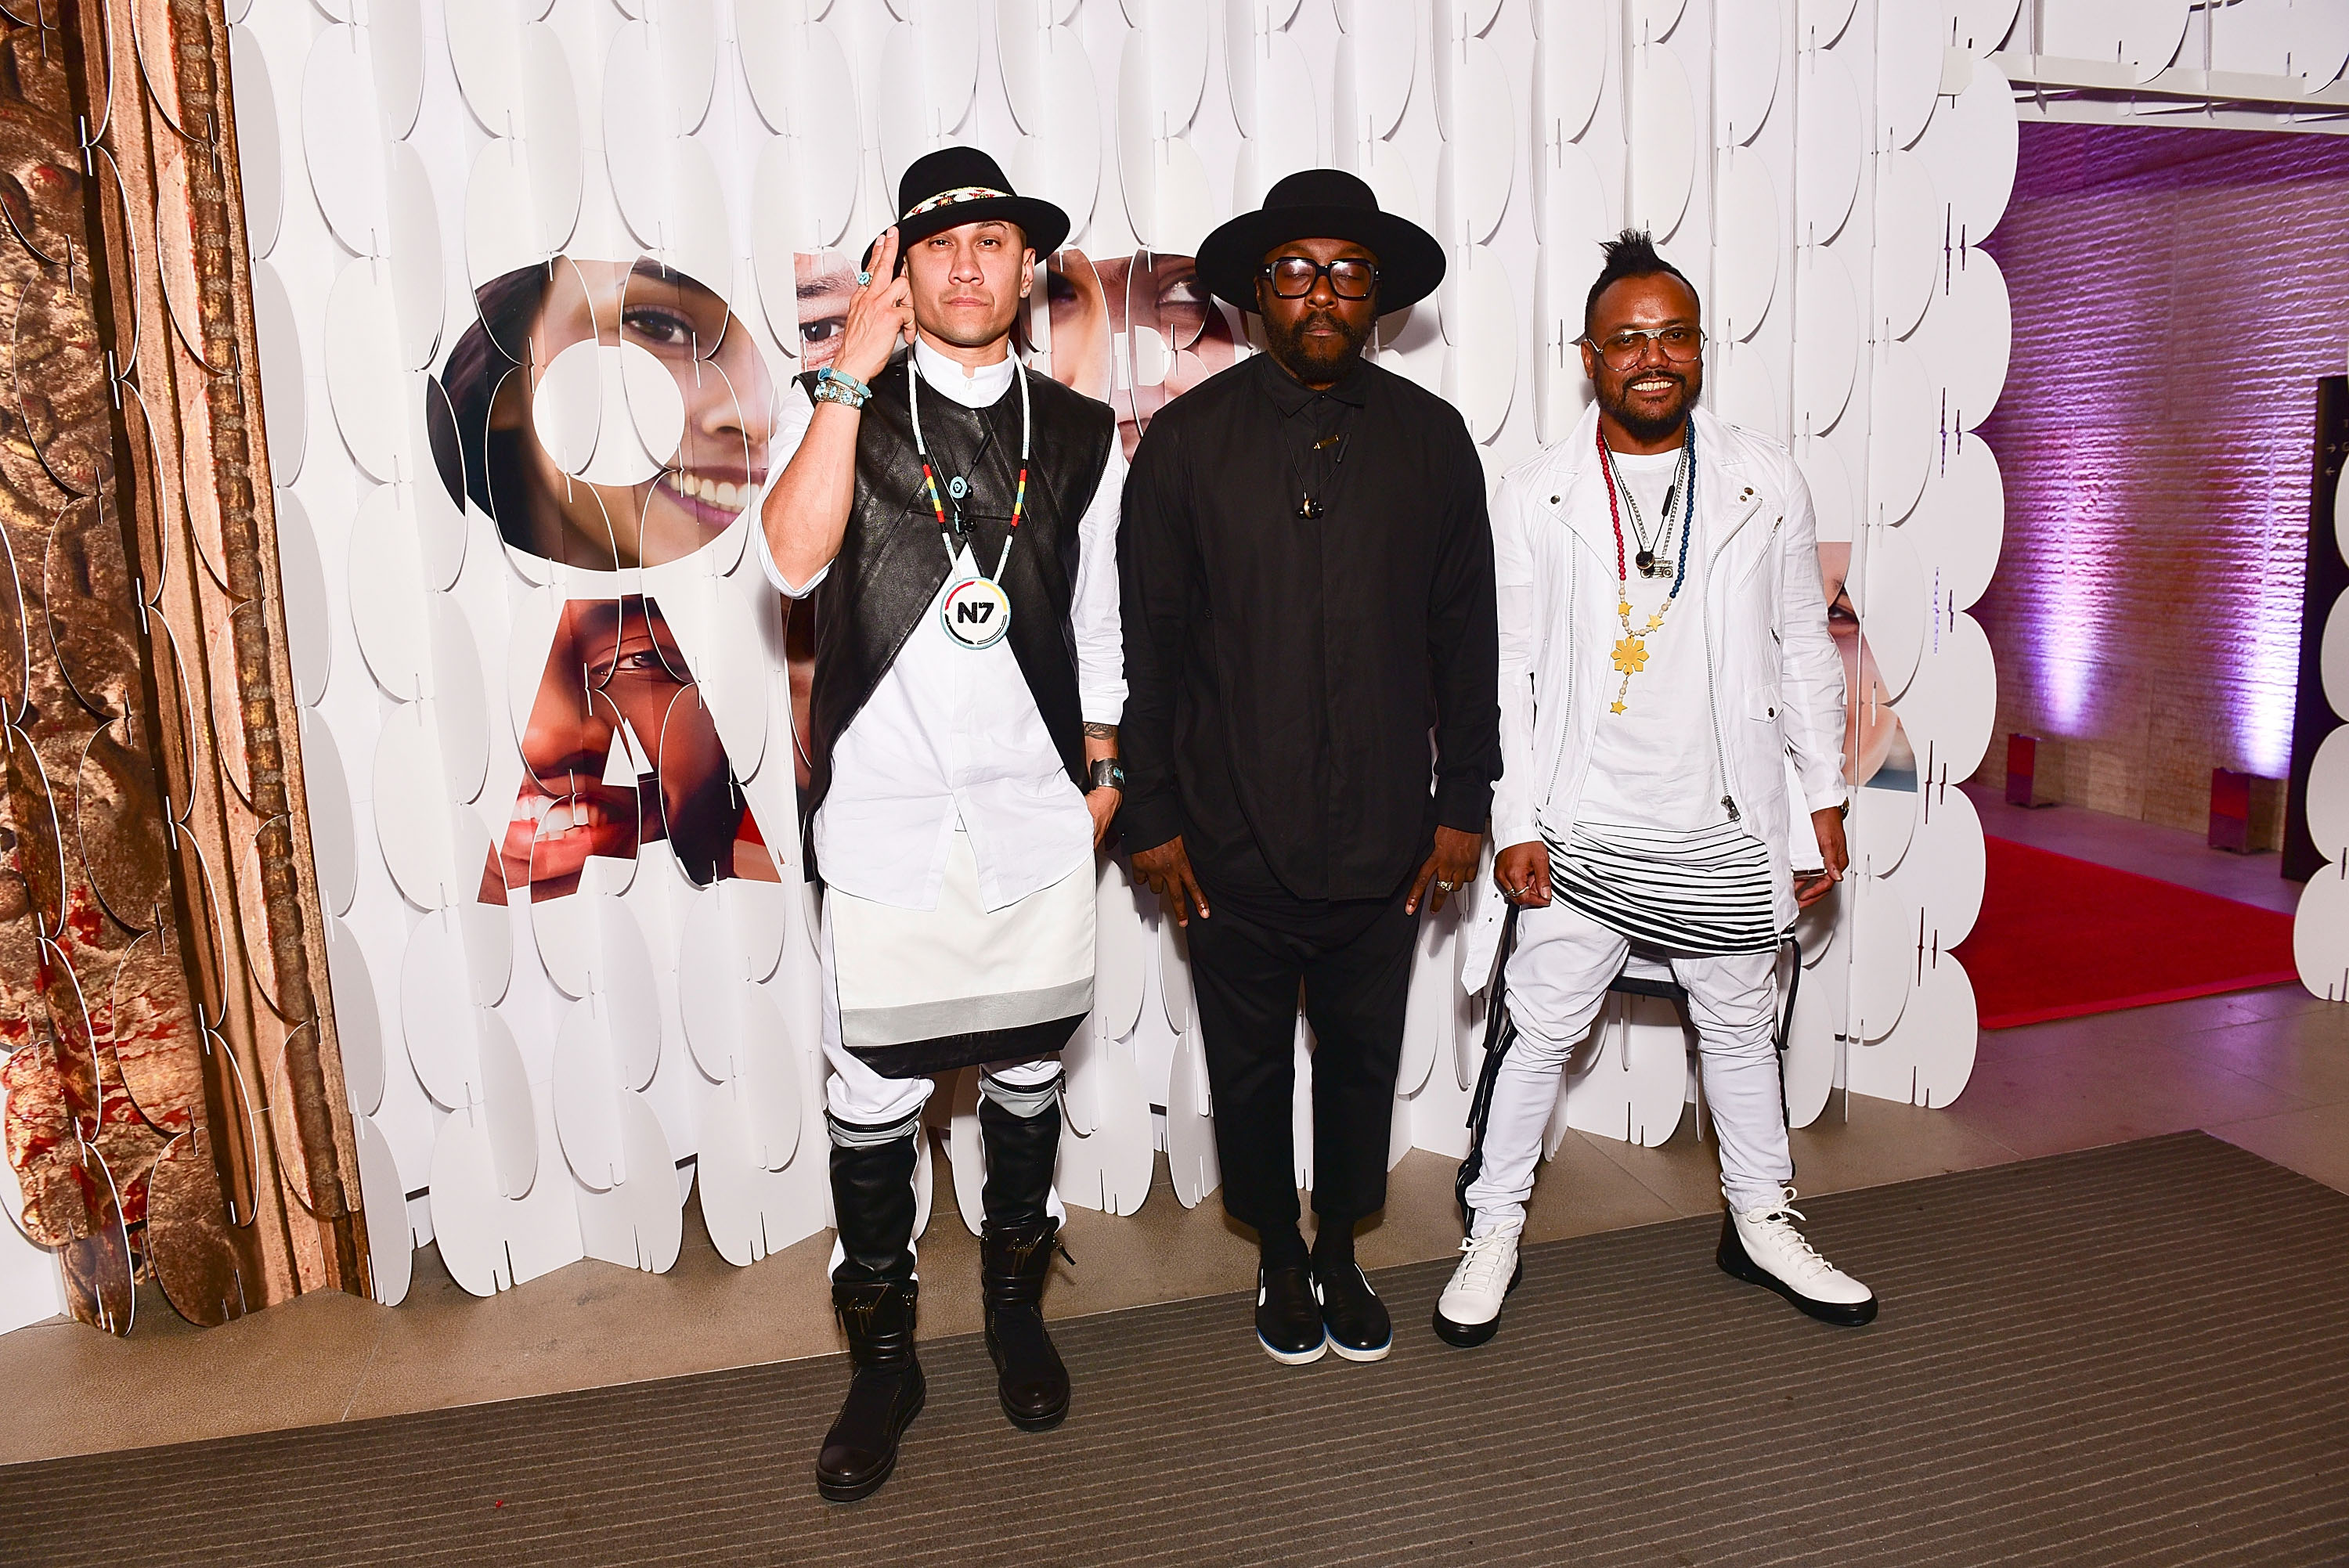 Who are the band Black eyed peas members names and pictures